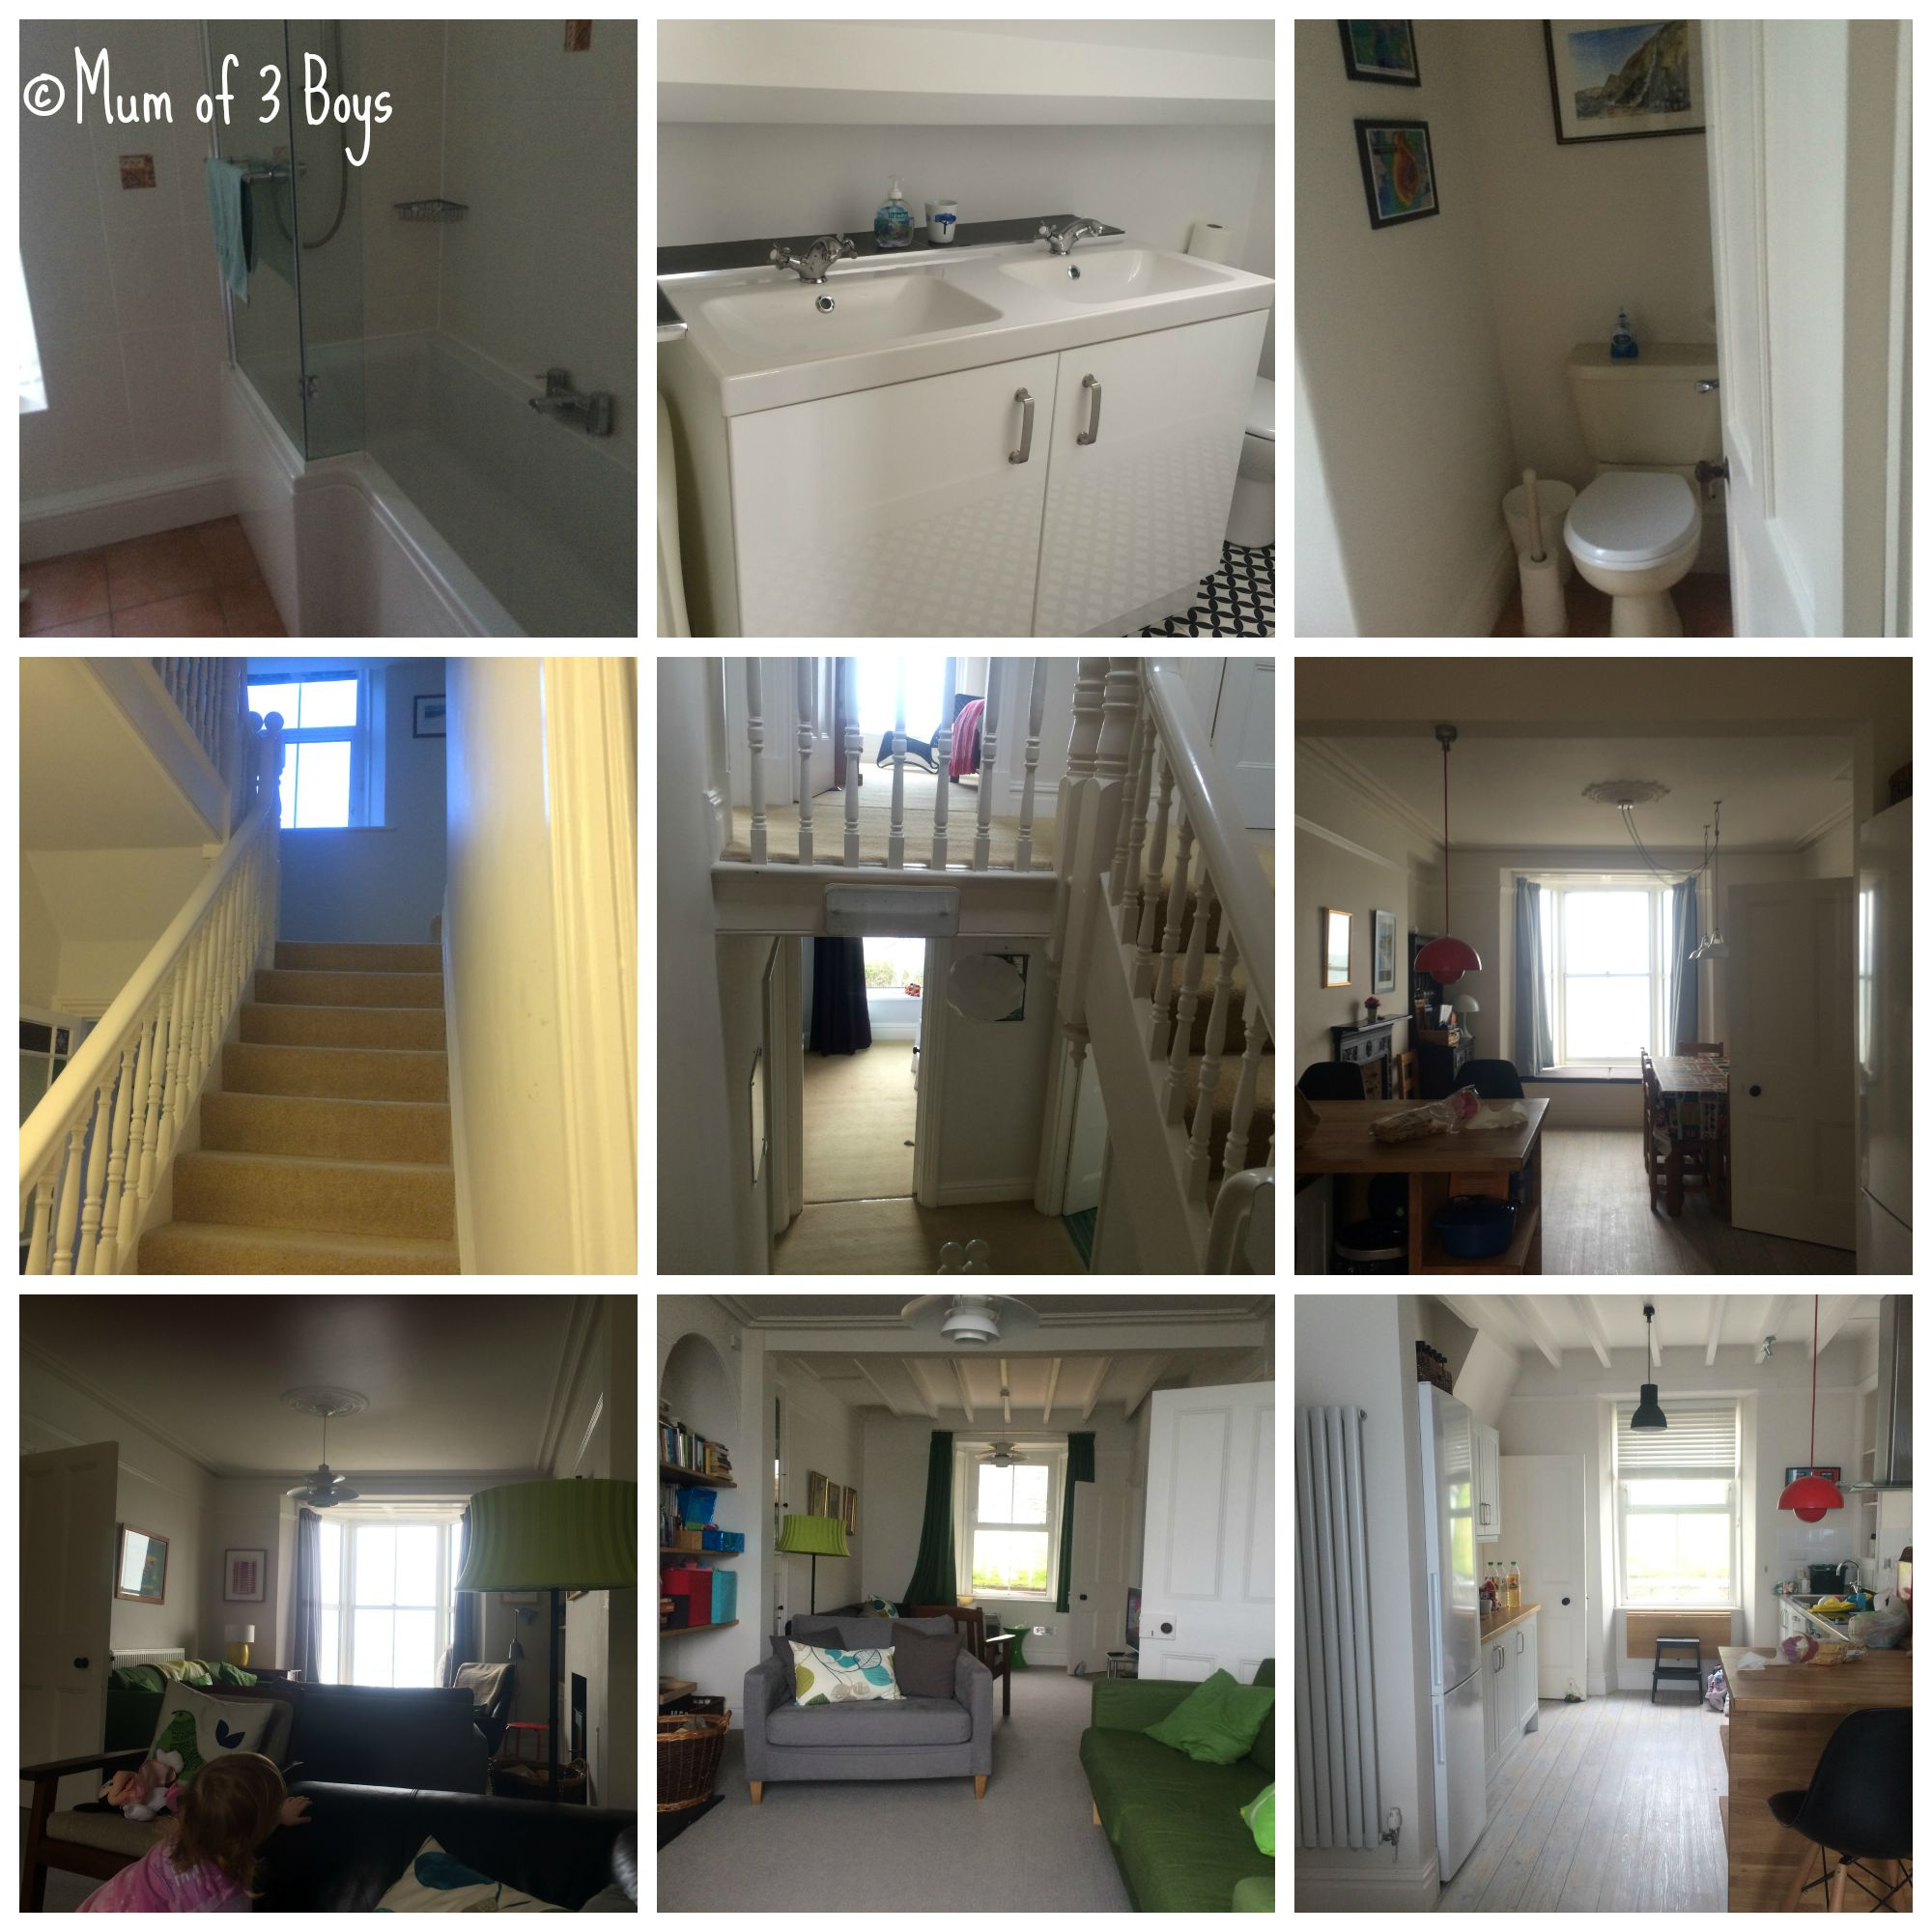 Bathrooms and downstairs rooms